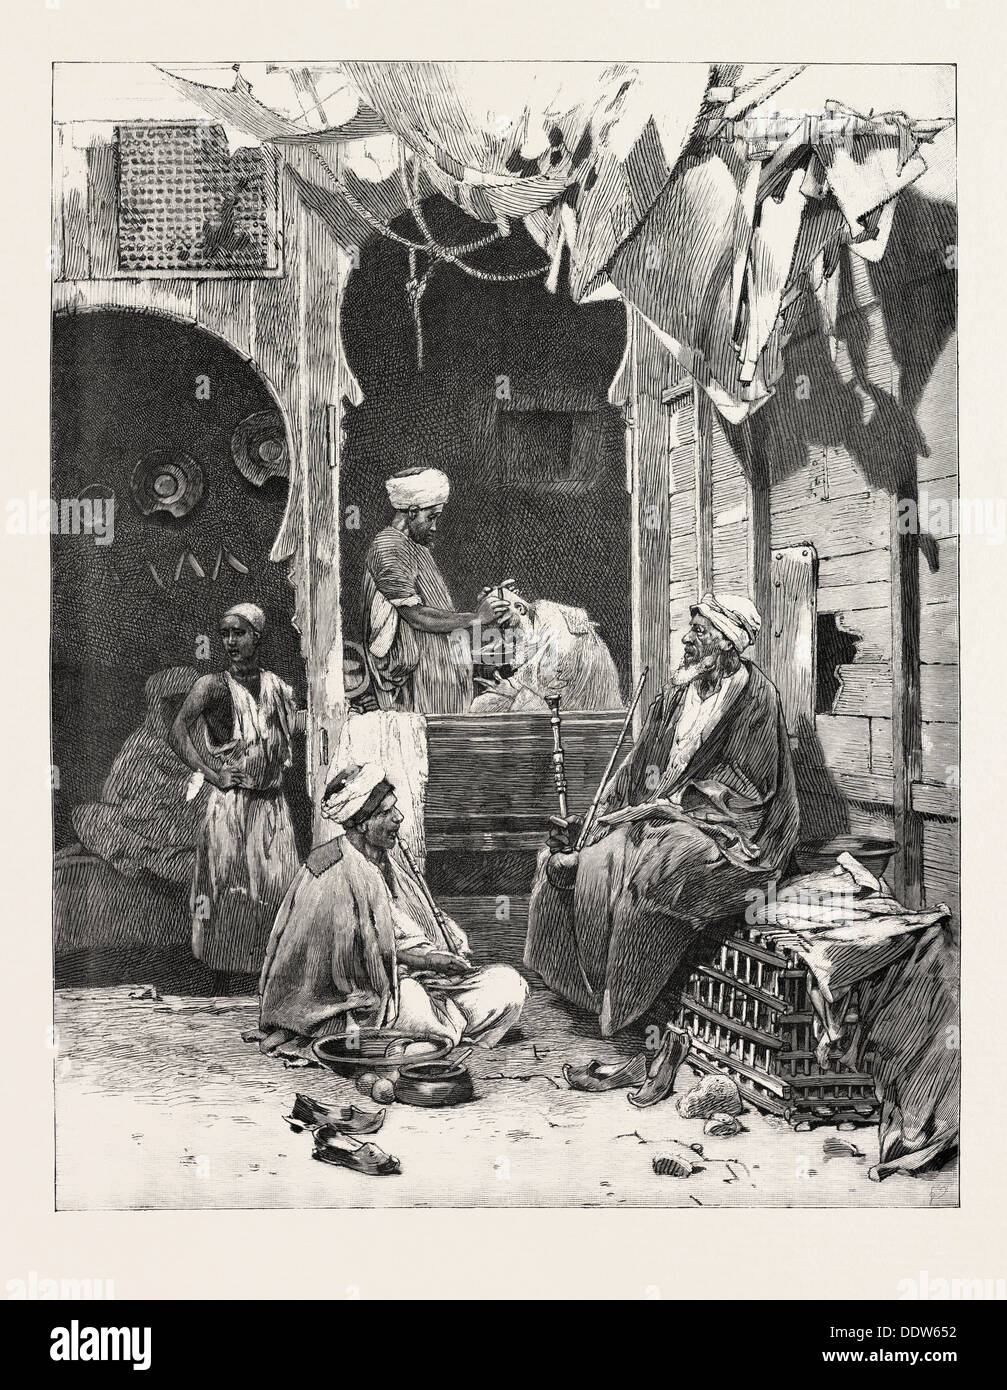 A BARBER'S SHOP AT CAIRO: DISCUSSING THE SITUATION, EGYPT, 1893 engraving - Stock Image